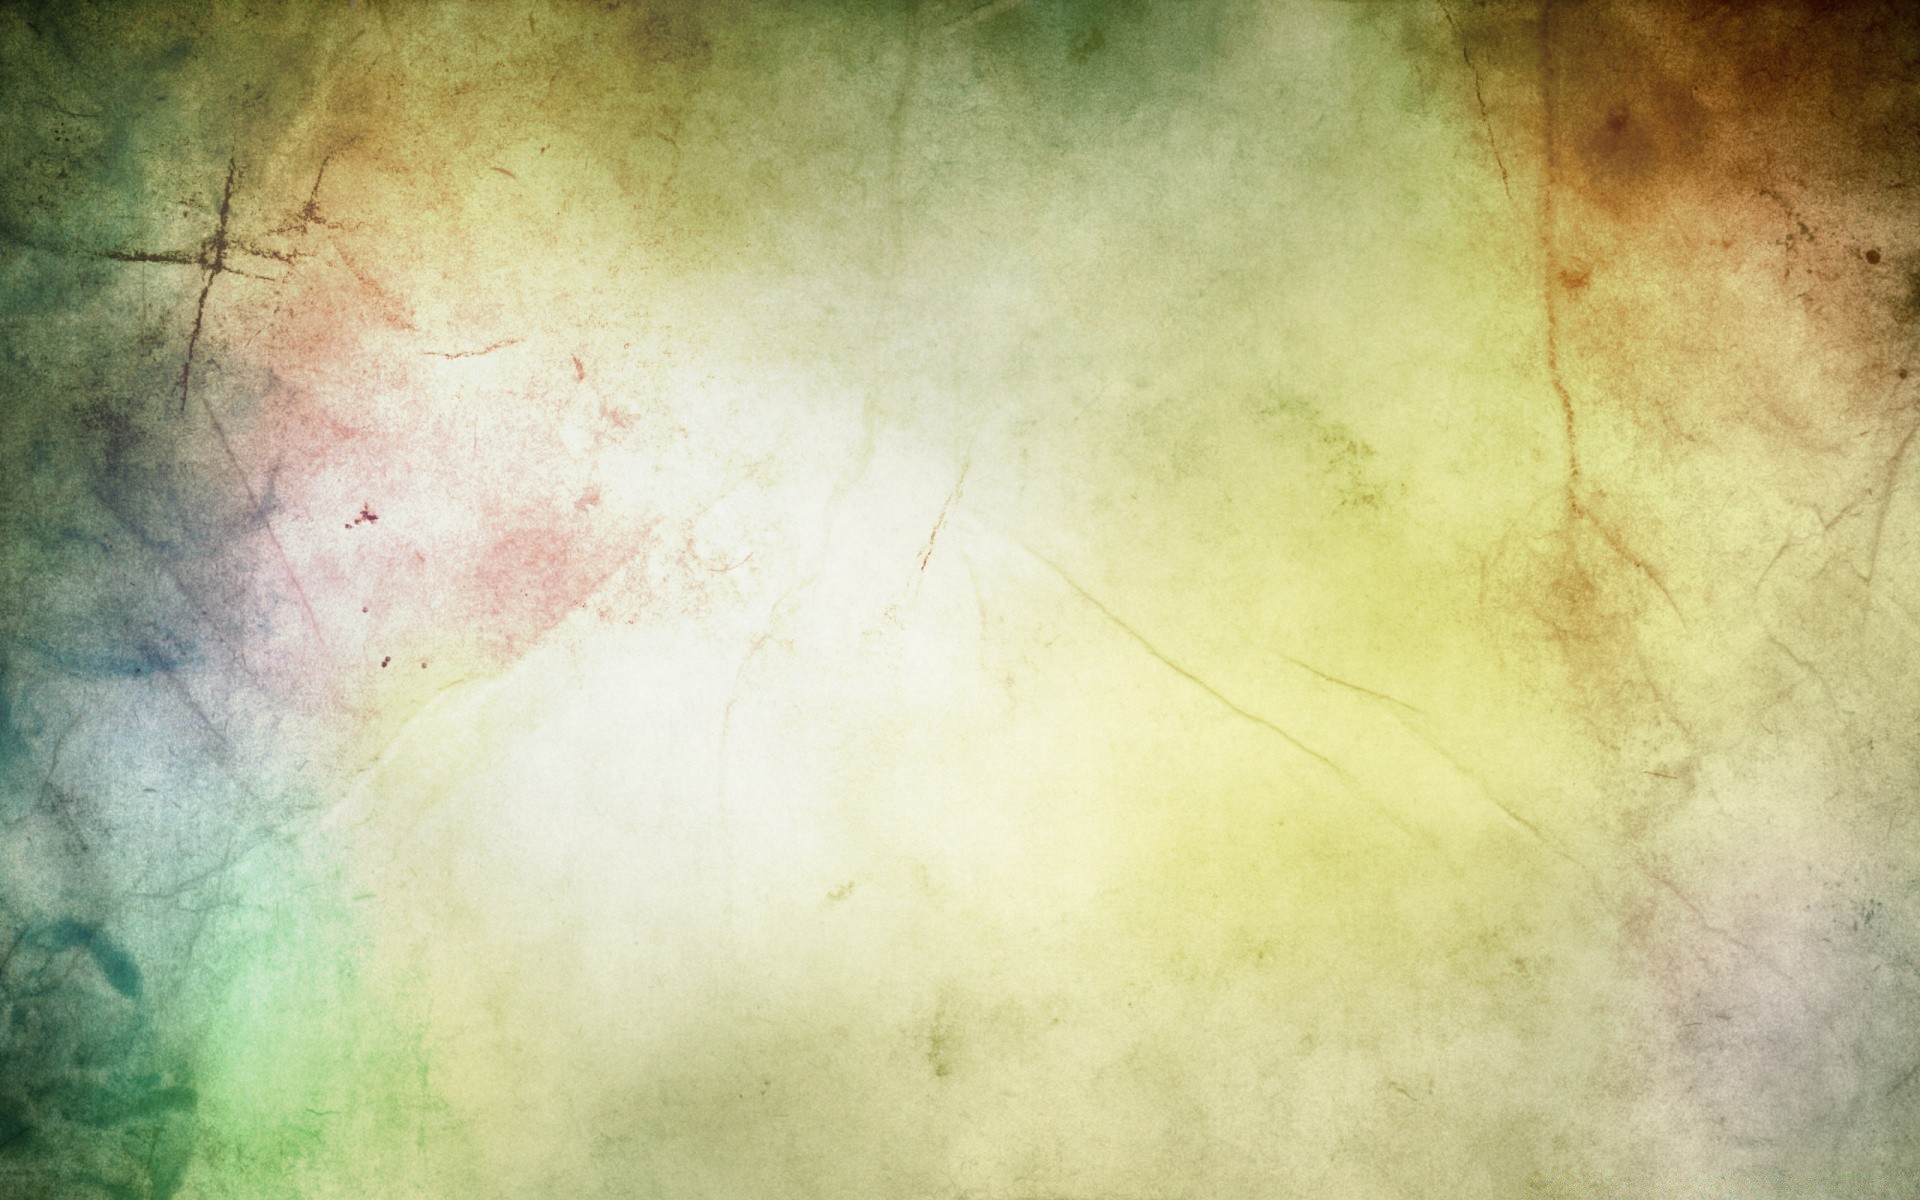 grunge paper watercolor vintage retro abstract canvas texture page hd wallpaper android wallpapers for free